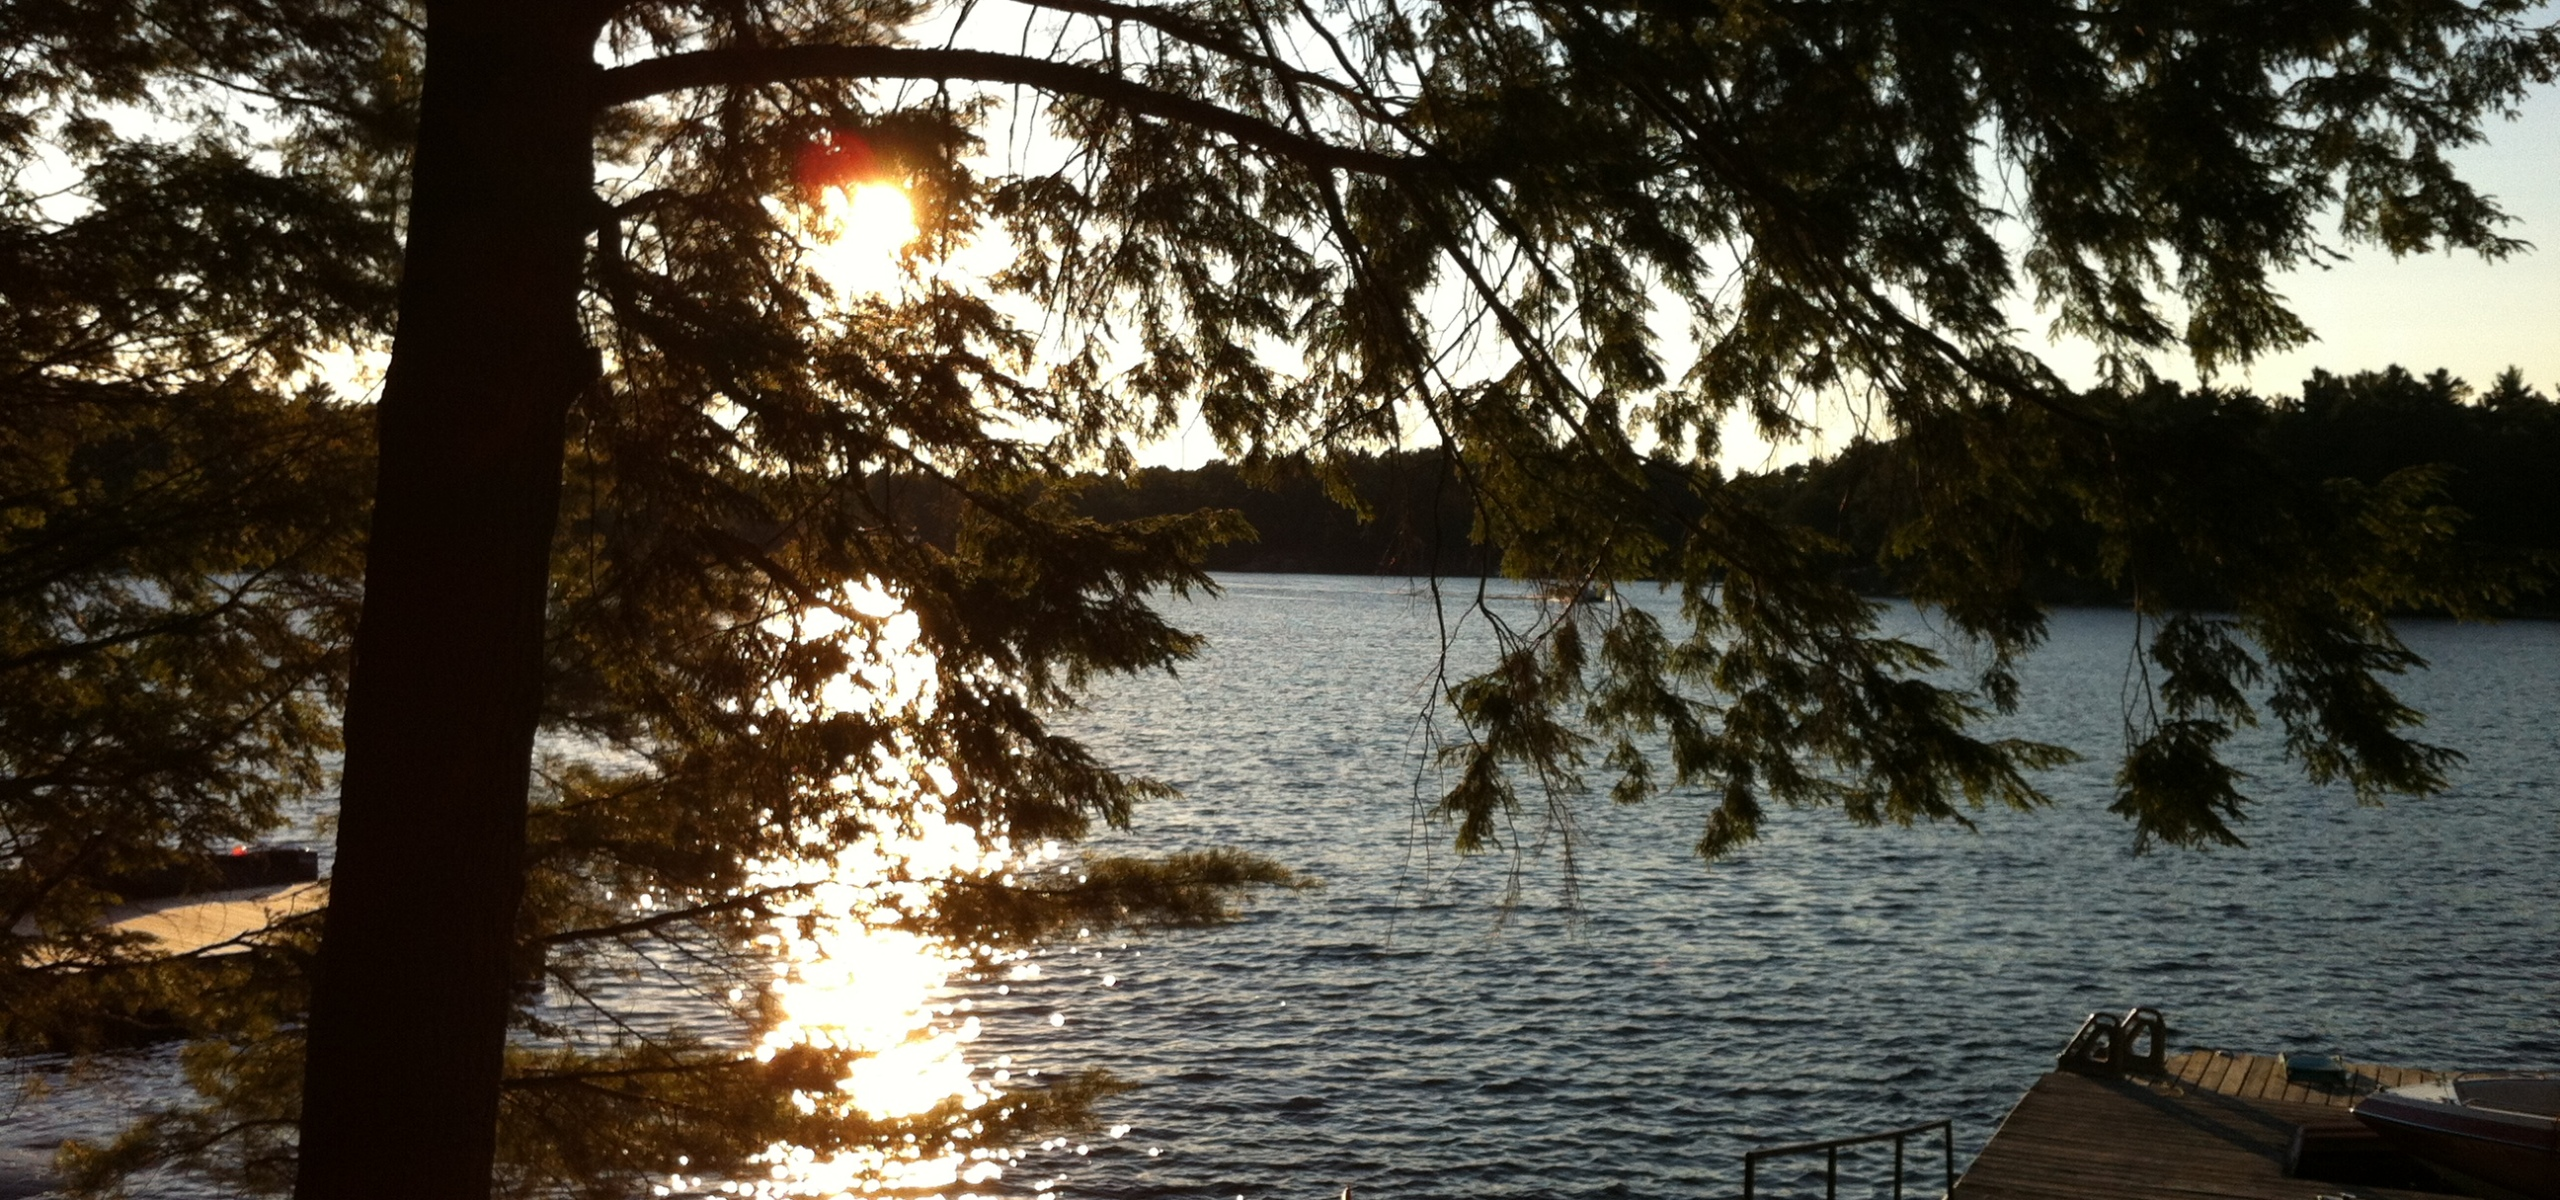 Sunset at Harris Lake